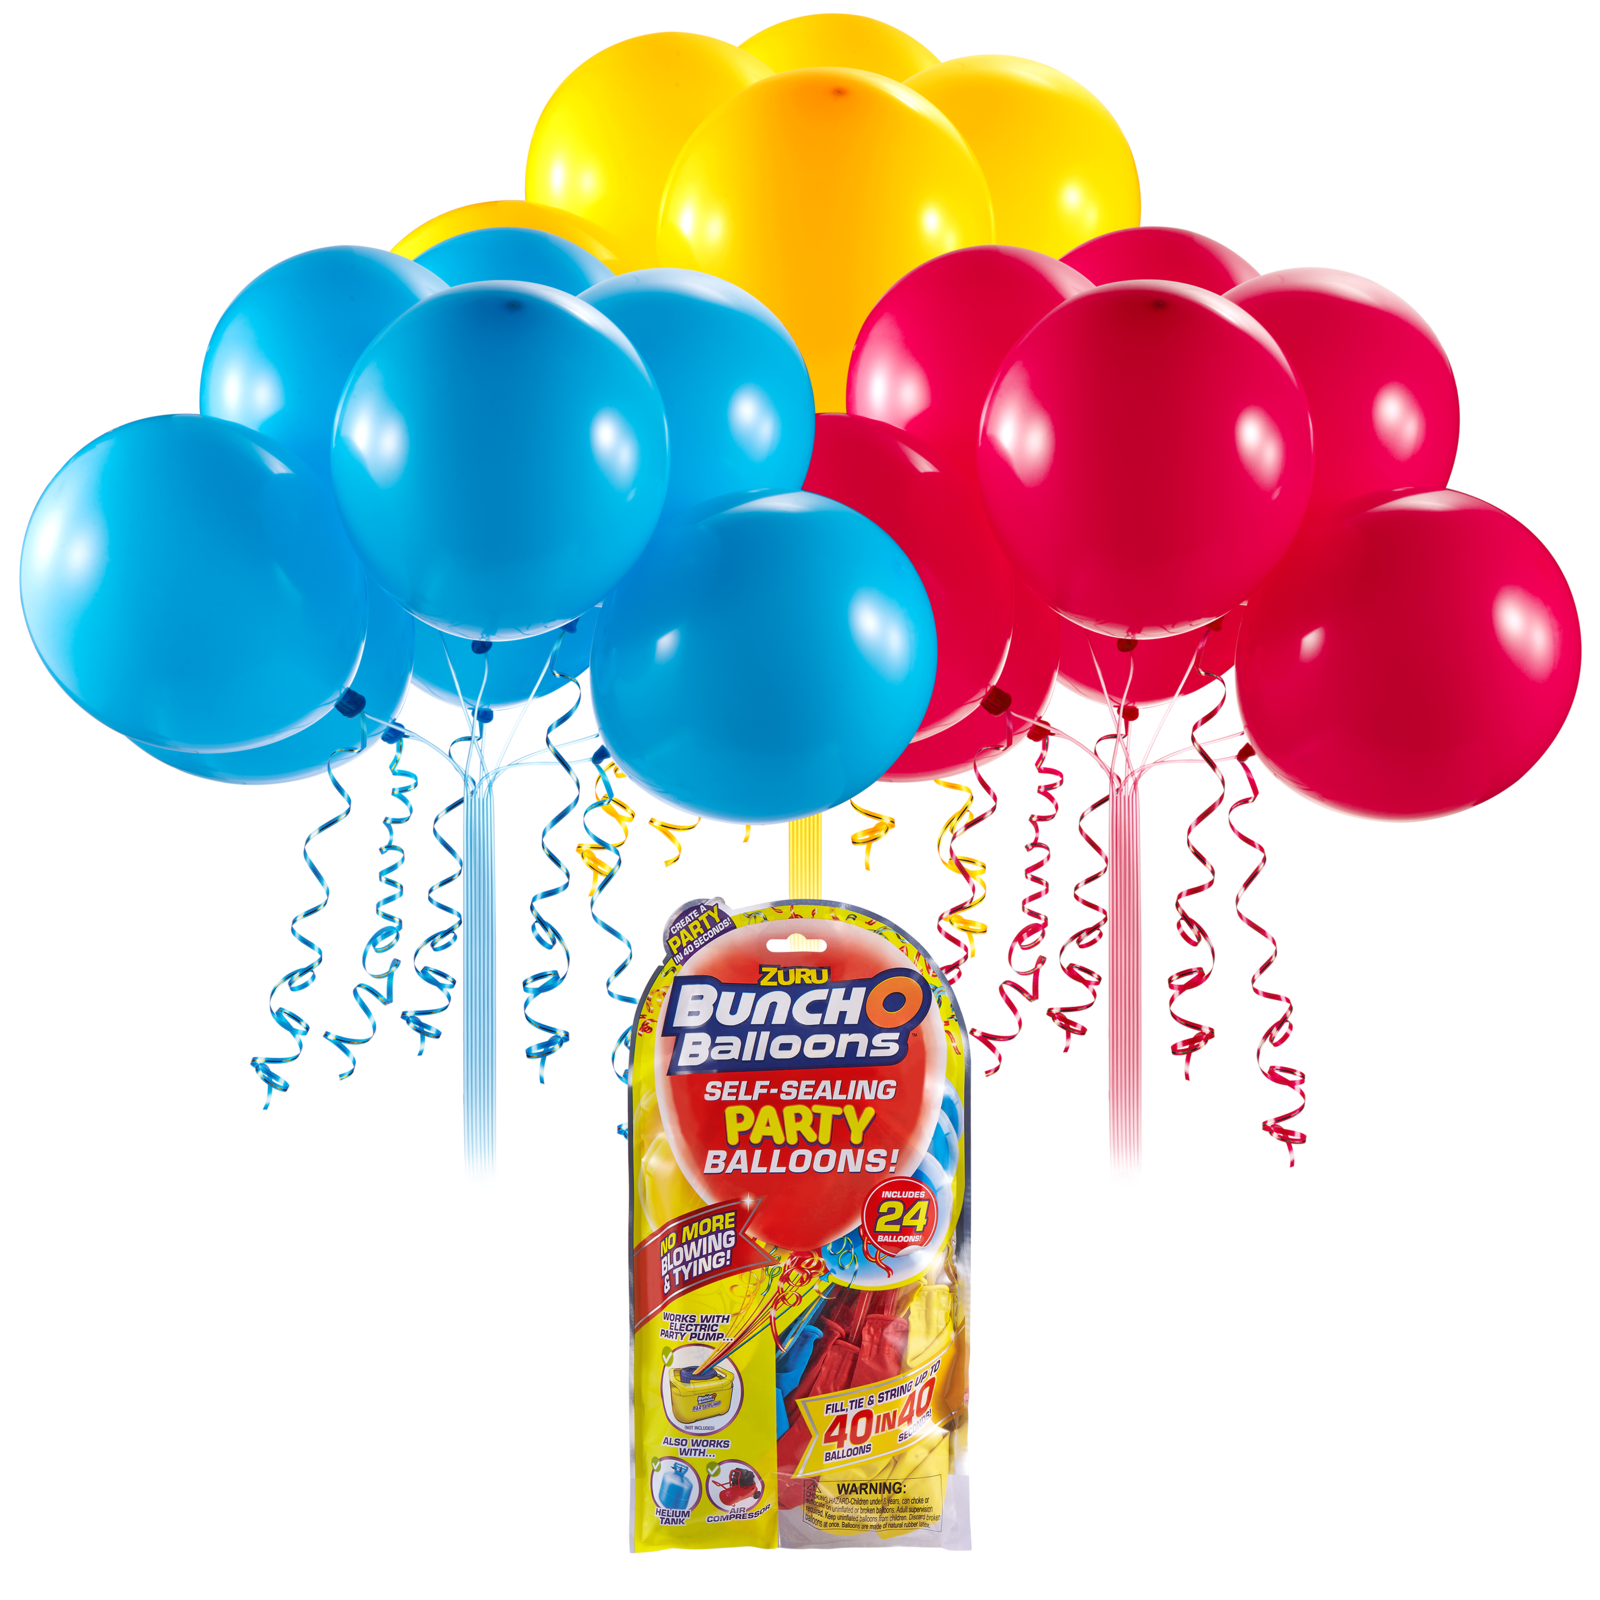 Bunch O' Balloons: Self Sealing Party Balloons - (24 x Red/Blue/Yellow) image